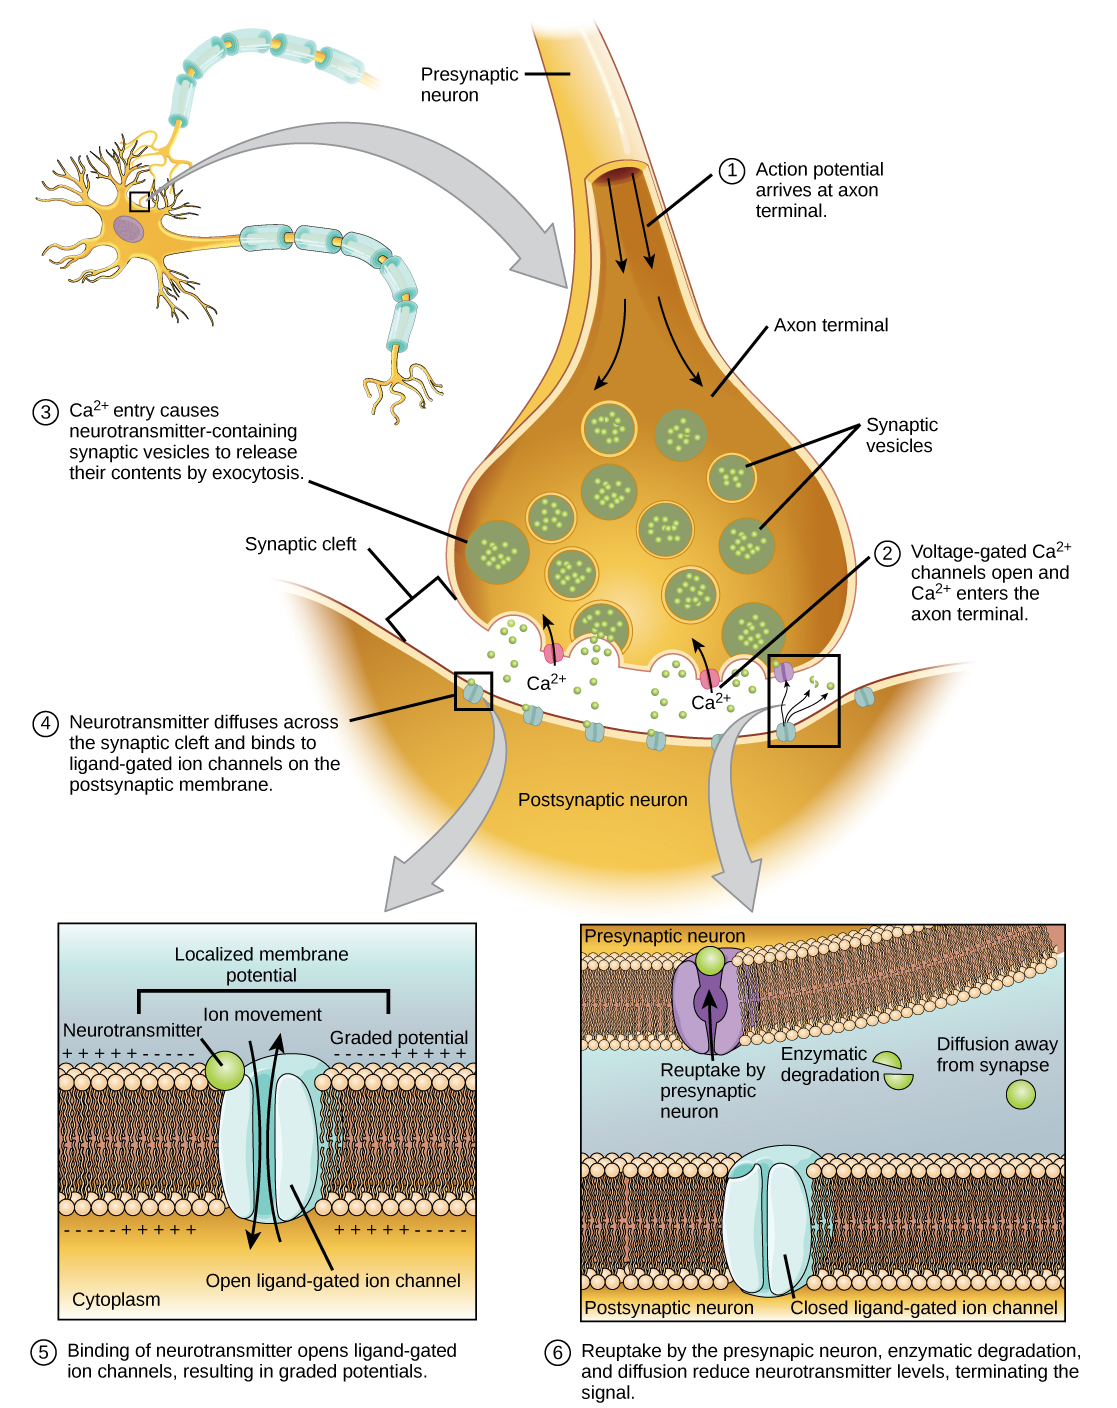 Illustration shows a narrow axon of a presynaptic cell widening into a bulb-like axon terminal. A narrow synaptic cleft separates the axon terminal of the presynaptic cell from the postsynaptic cell. In step 1, an action potential arrives at the axon terminal. In step 2, the action potential causes voltage-gated calcium channels in the axon terminal open, allowing calcium to enter. In step 3, calcium influx causes neurotransmitter-containing synaptic vesicles to fuse with the plasma membrane. Contents of the vesicles are released into the synaptic cleft by exocytosis. In step 4, neurotransmitter diffuses across the synaptic cleft and binds ligand-gated ion channels on the postsynaptic membrane, causing the channels to open. In step 5, the open channels cause ion movement into or out of the cell, resulting in a localized change in membrane potential. In step 6, reuptake by the presynaptic neuron, enzymatic degradation and diffusion reduce neurotransmitter levels, terminating the signal.